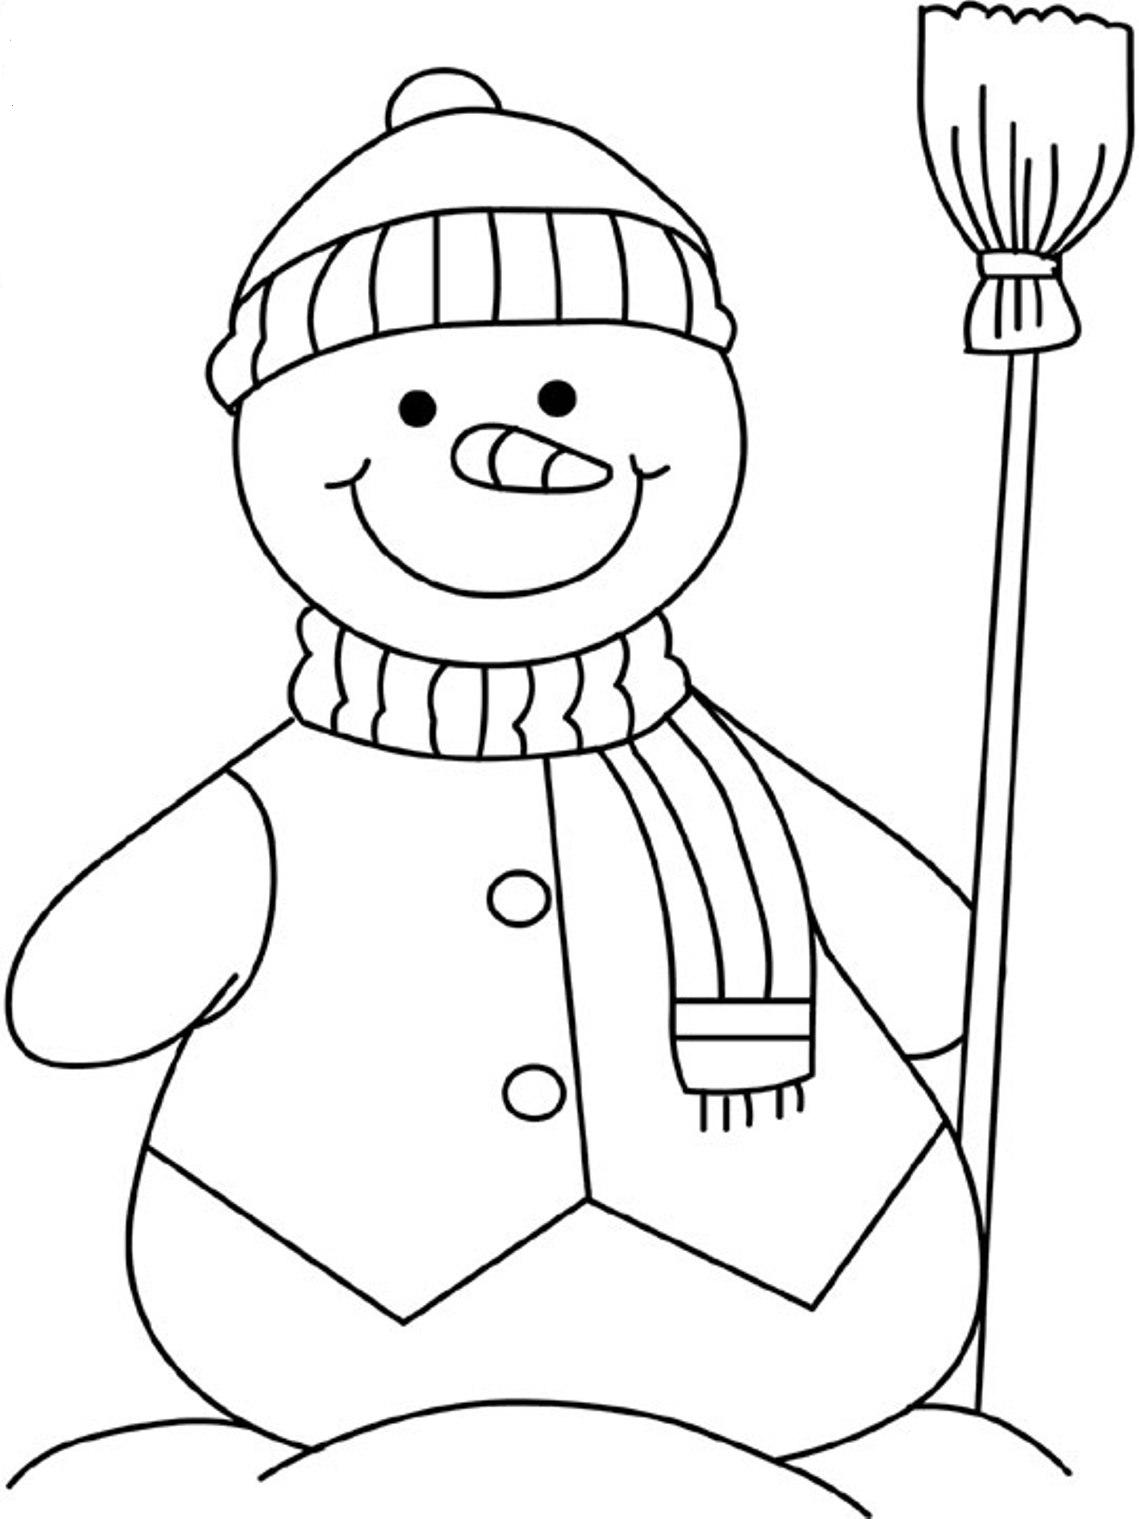 free printable snowman coloring pages snowman coloring pages to download and print for free pages printable free snowman coloring